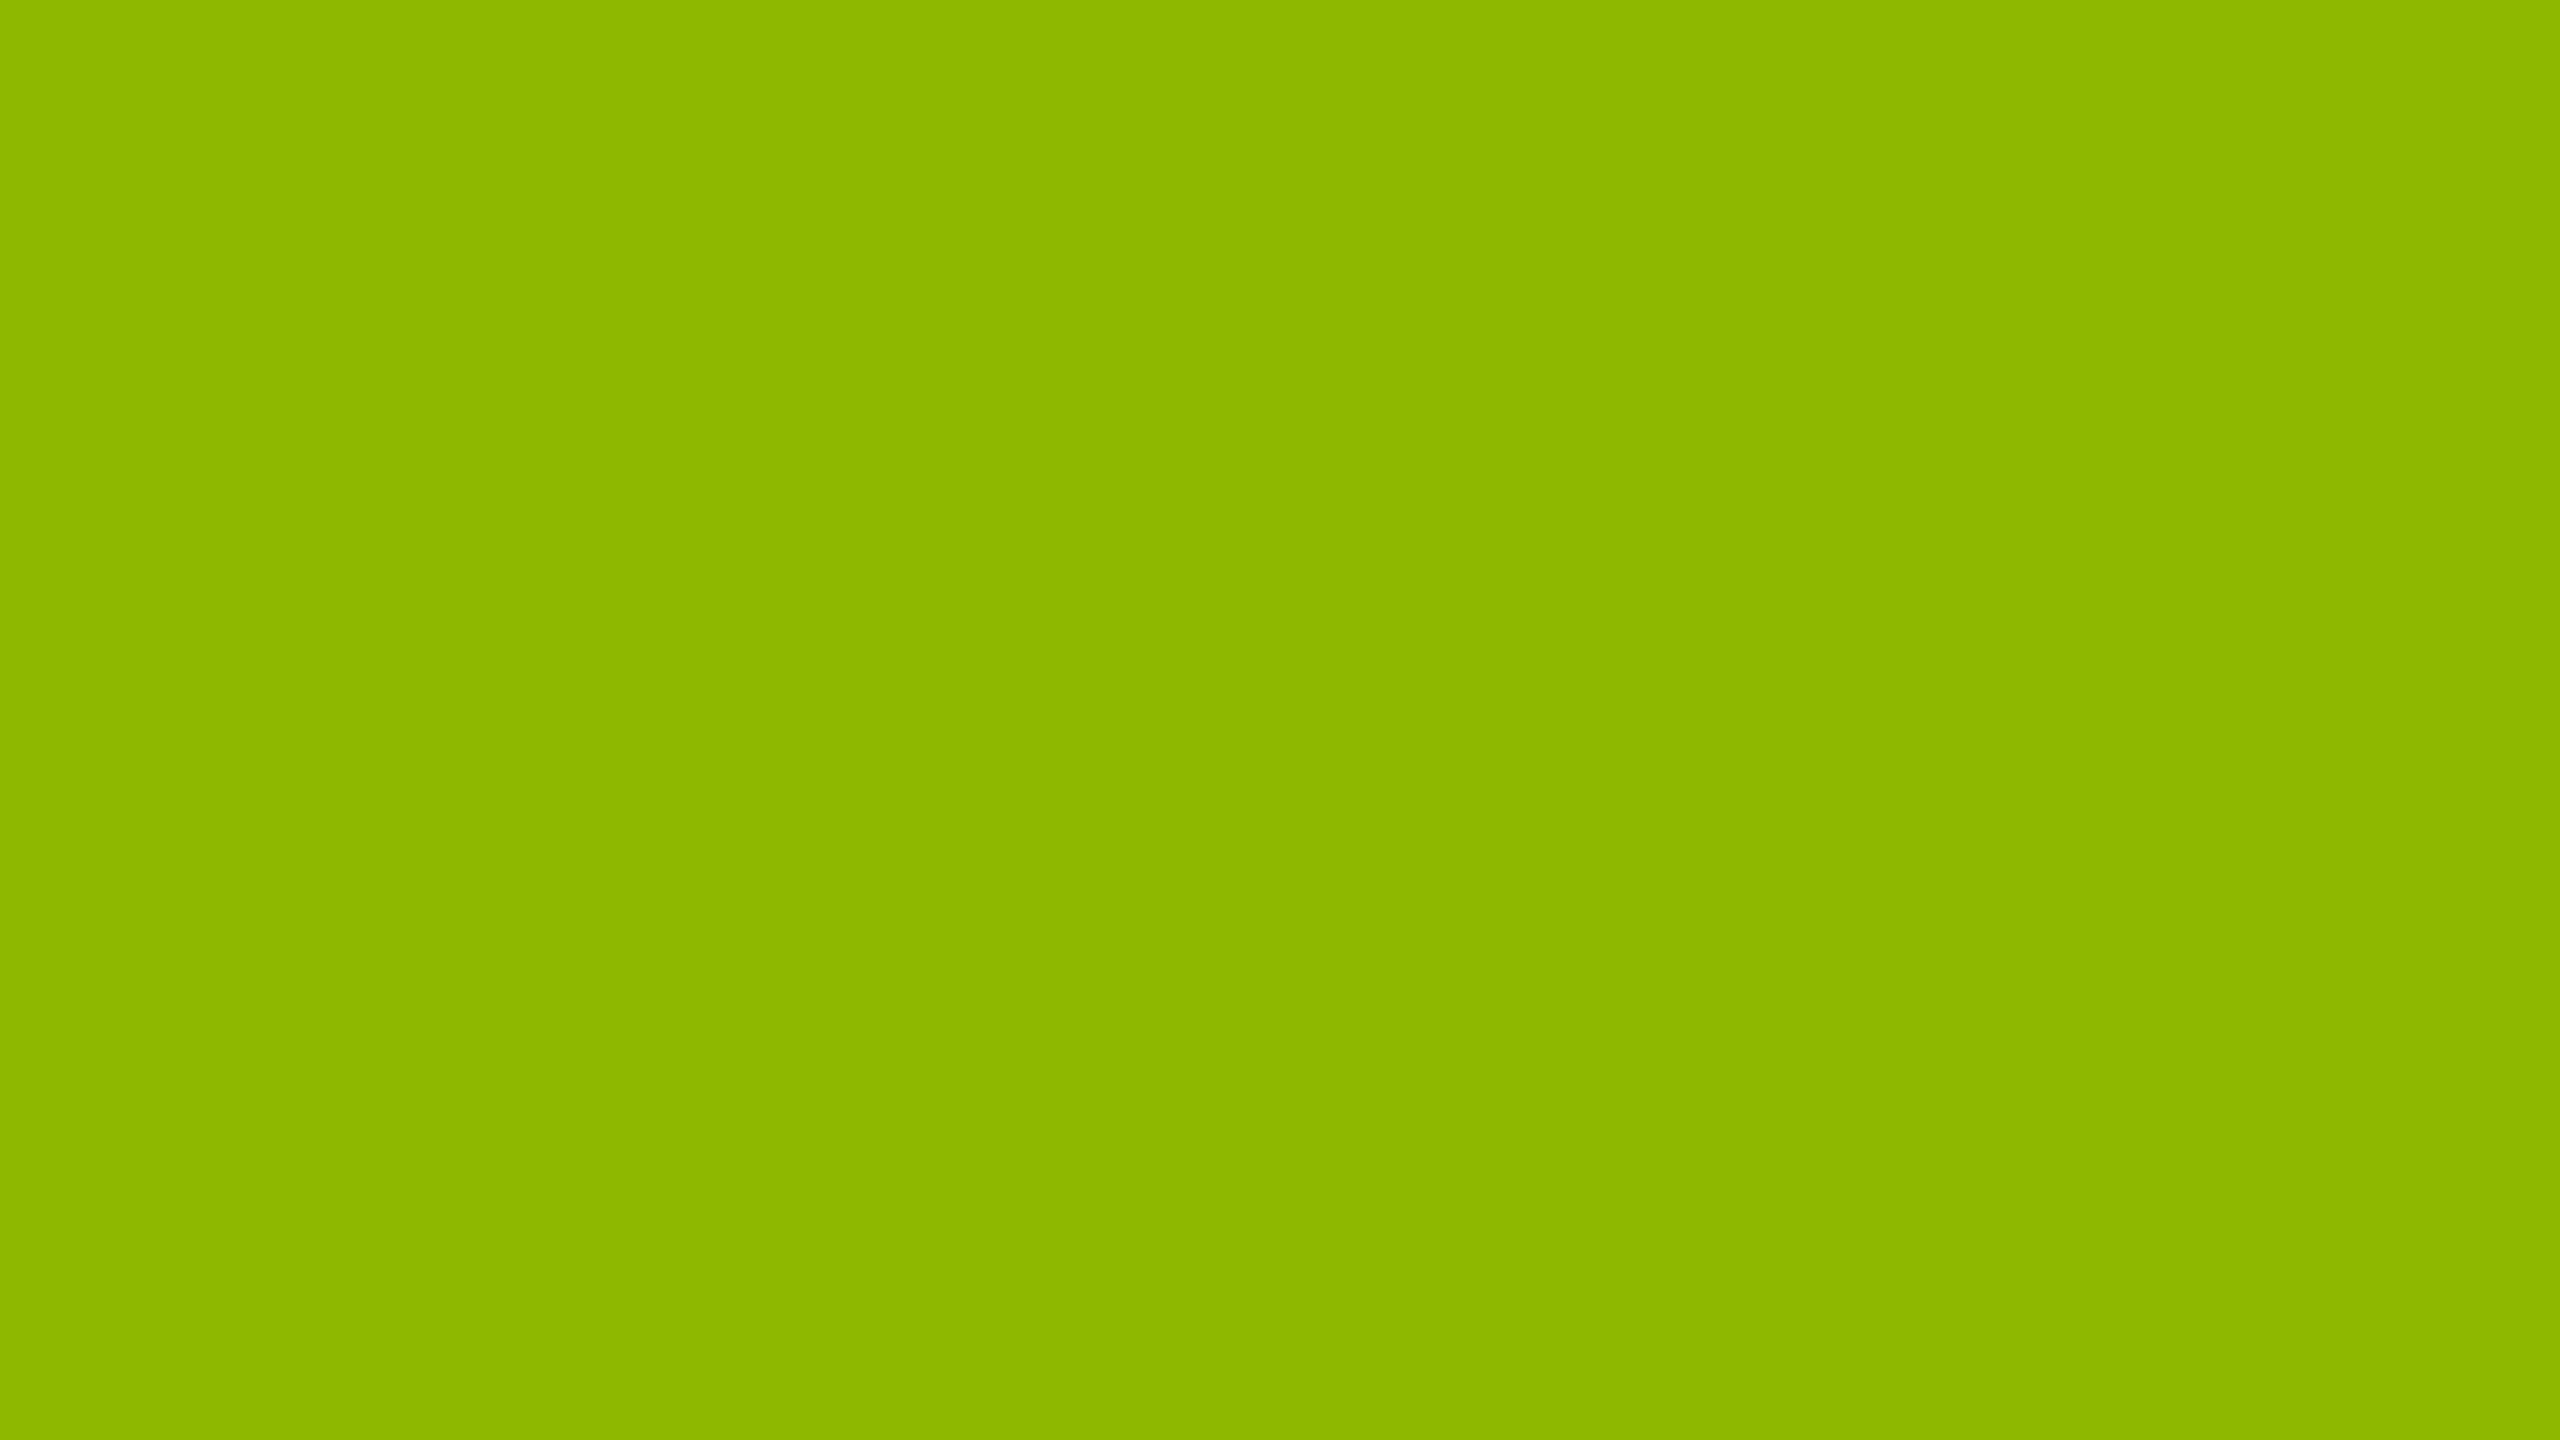 2560x1440 Apple Green Solid Color Background